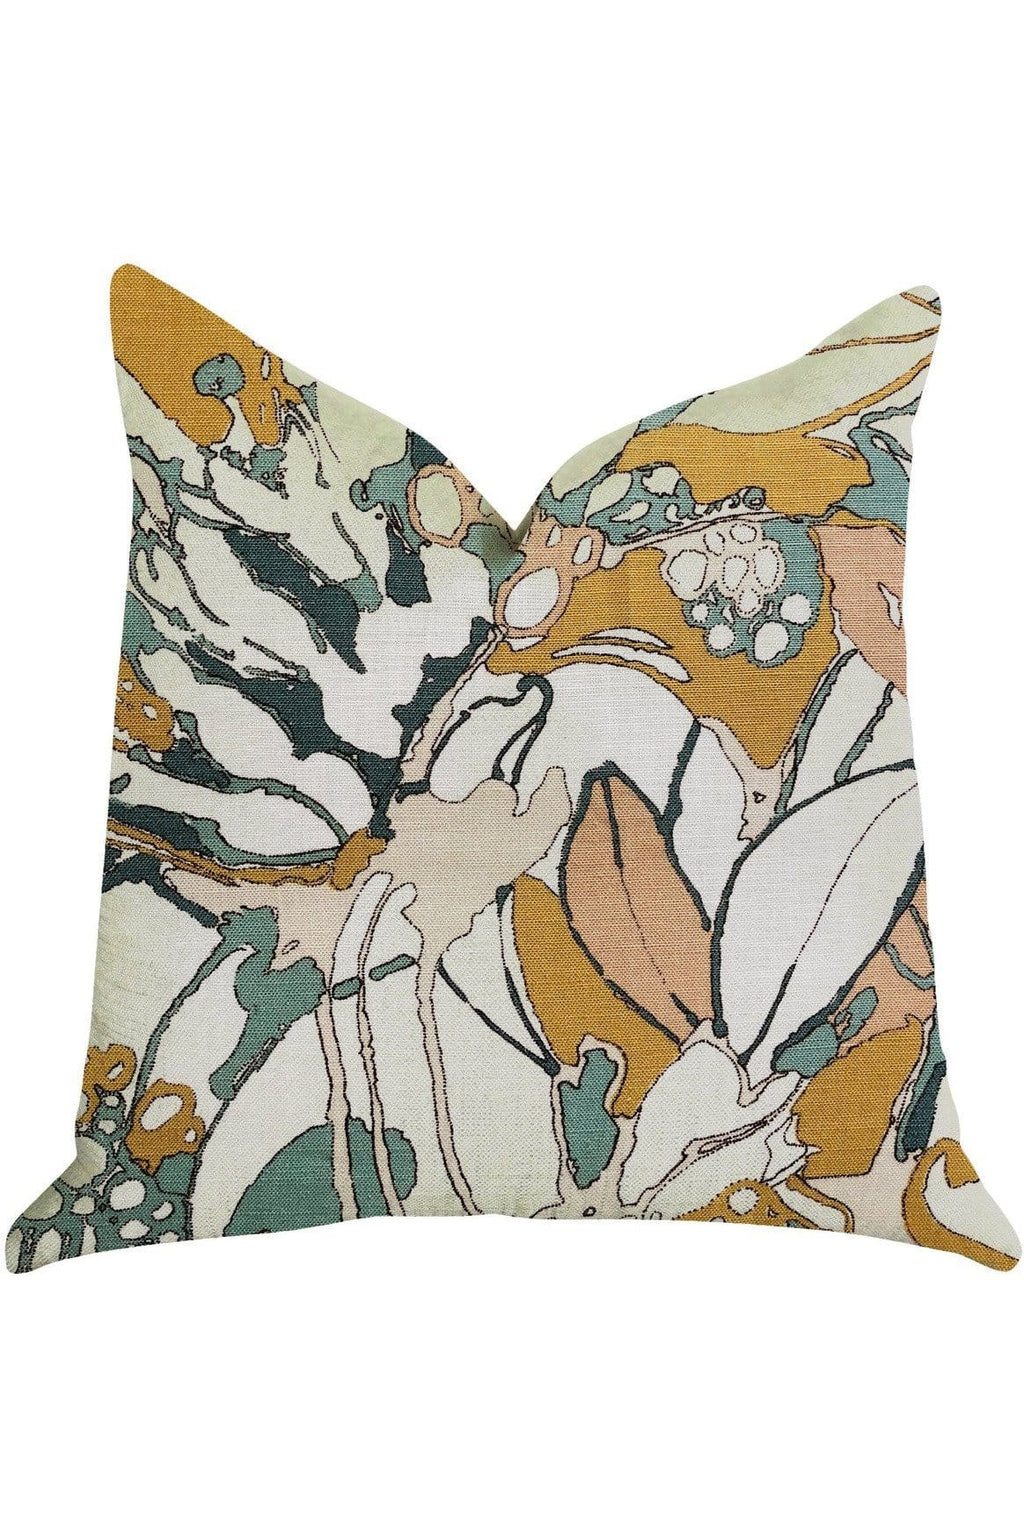 Camellia Floral Multi Color Luxury Throw Pillow - Himelhoch's